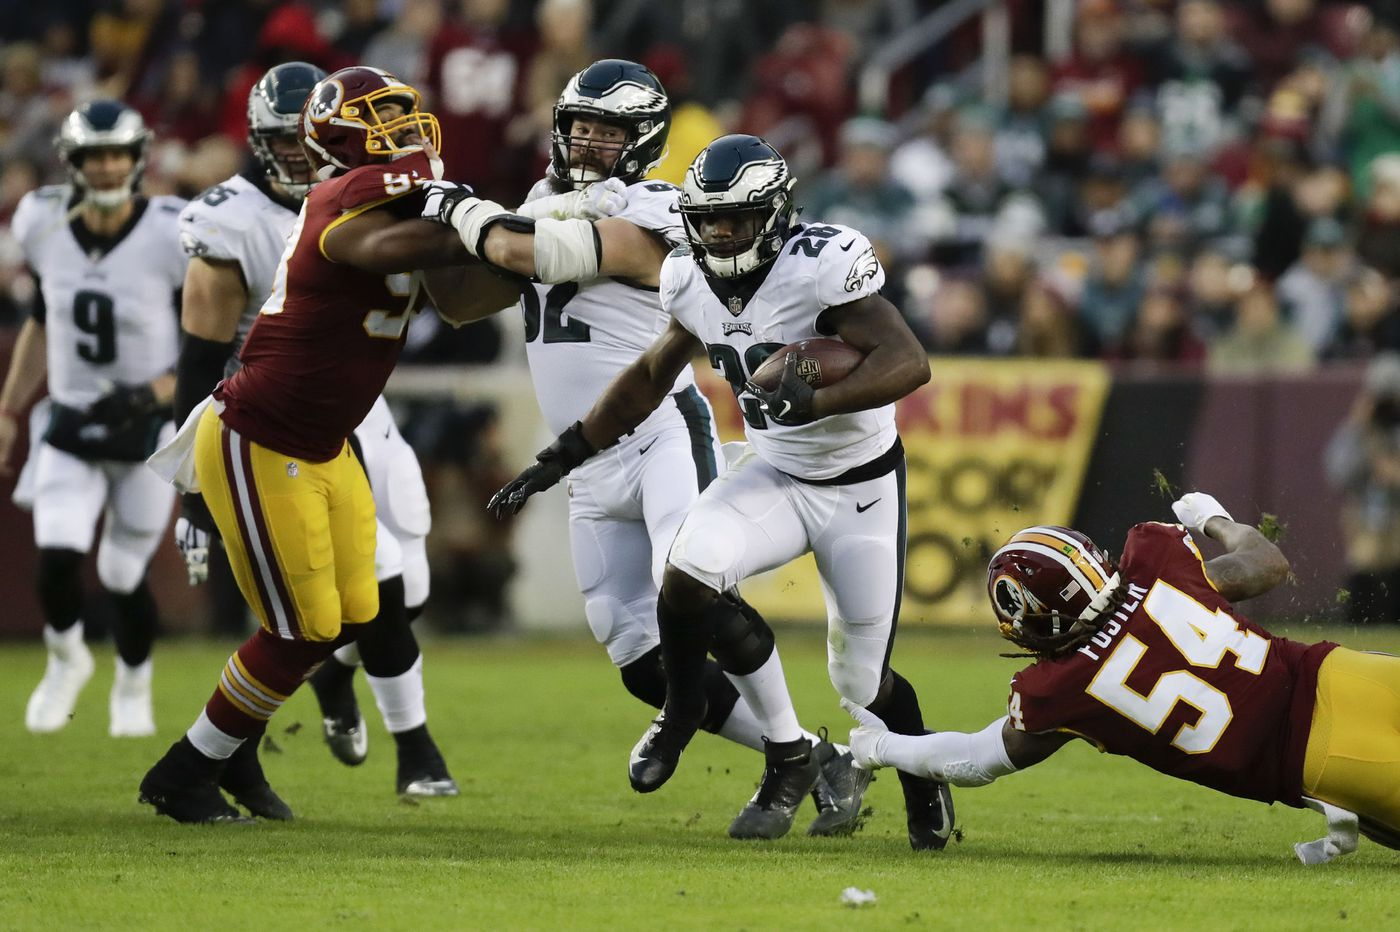 Eagles played keep-away, dominated Redskins and the clock, then watched it tick down on Minnesota